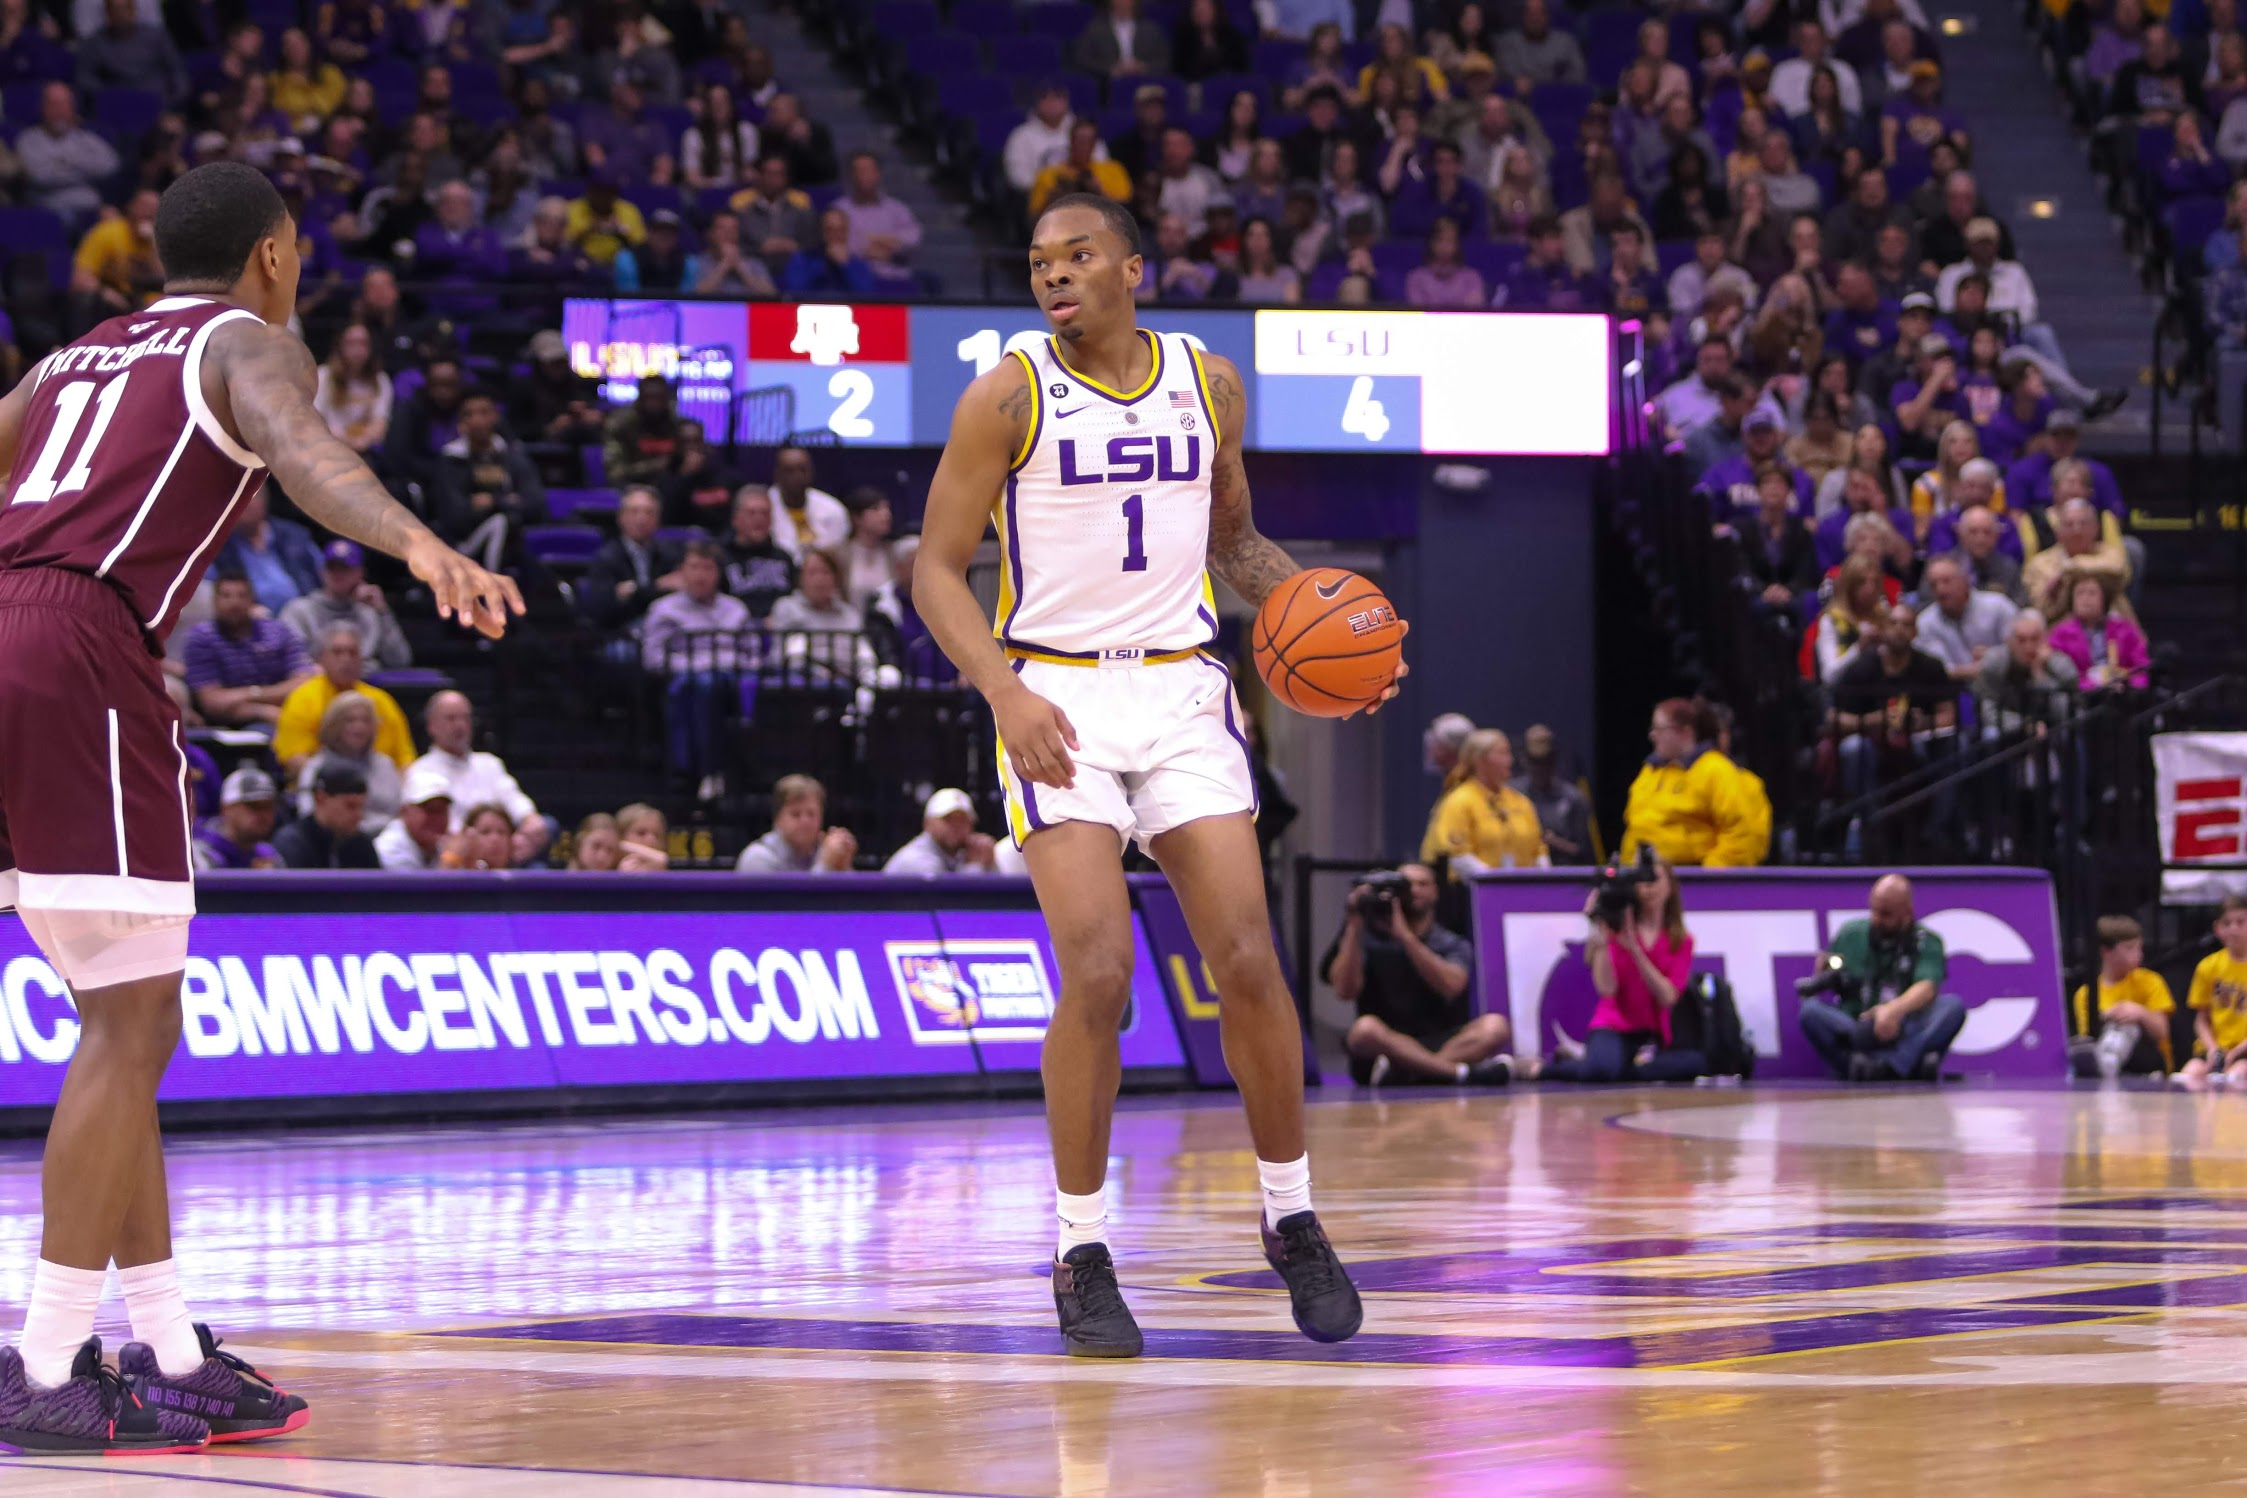 LSU handles Texas A&M behind Naz Reid